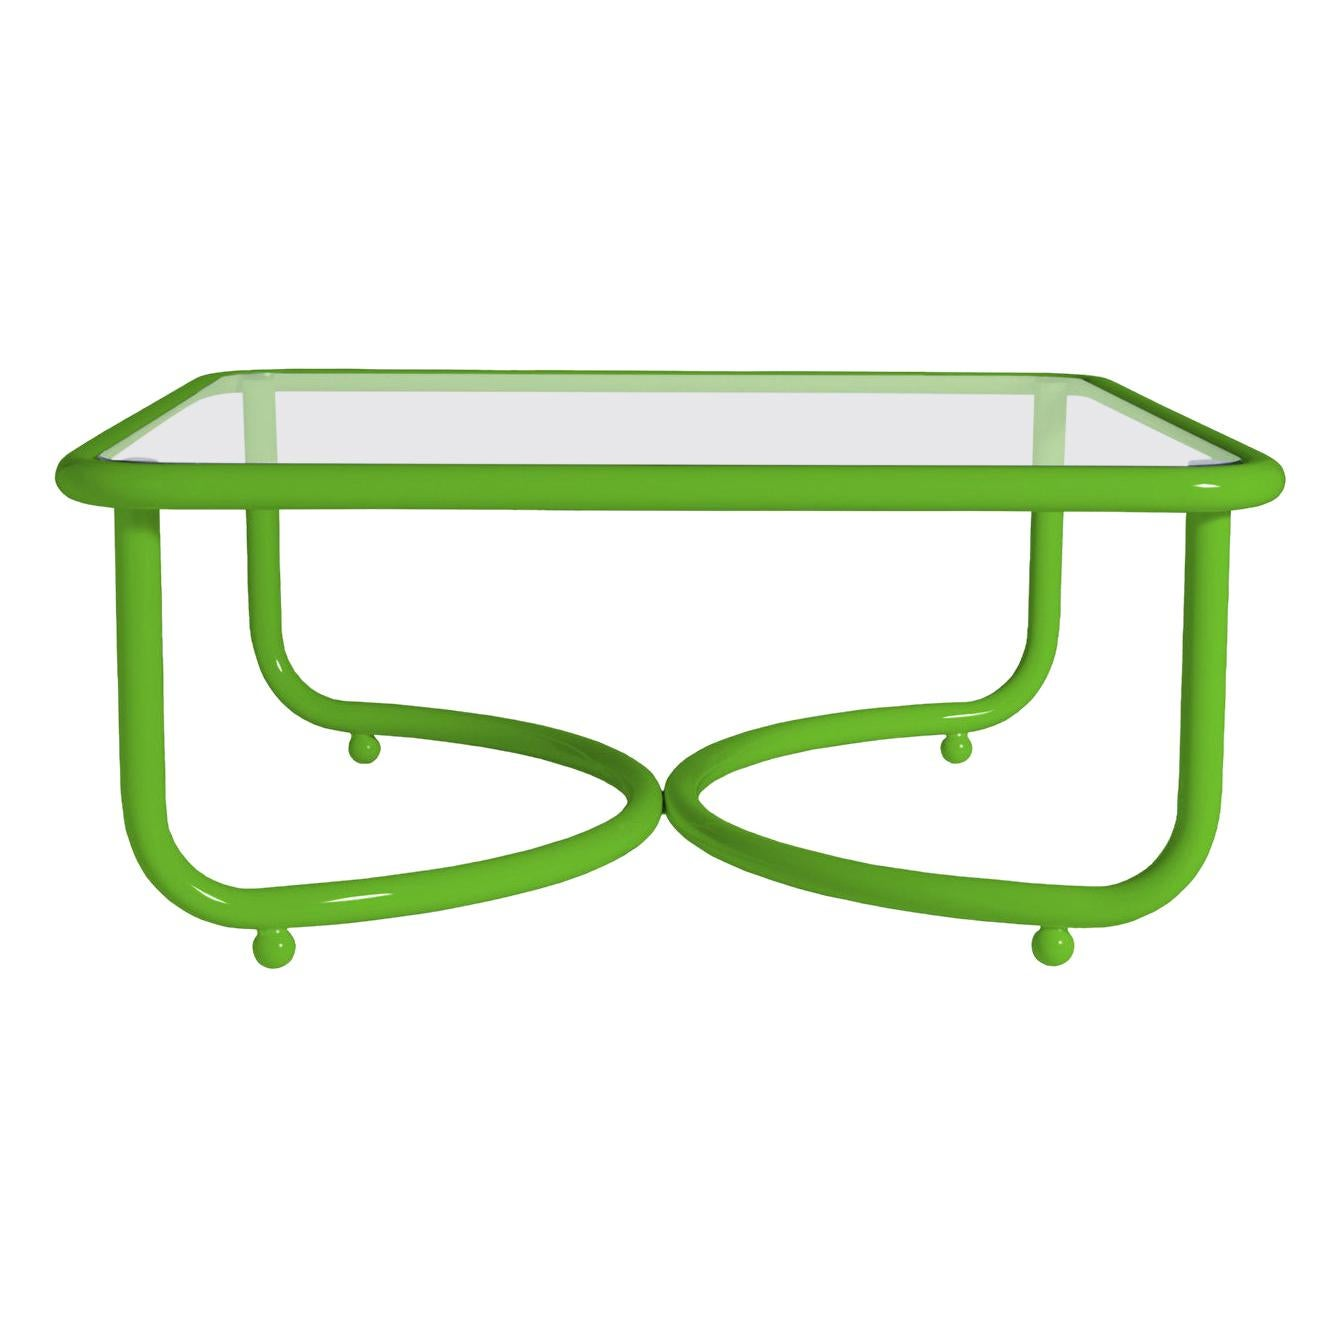 Locus Solus Green Low Table by Gae Aulenti